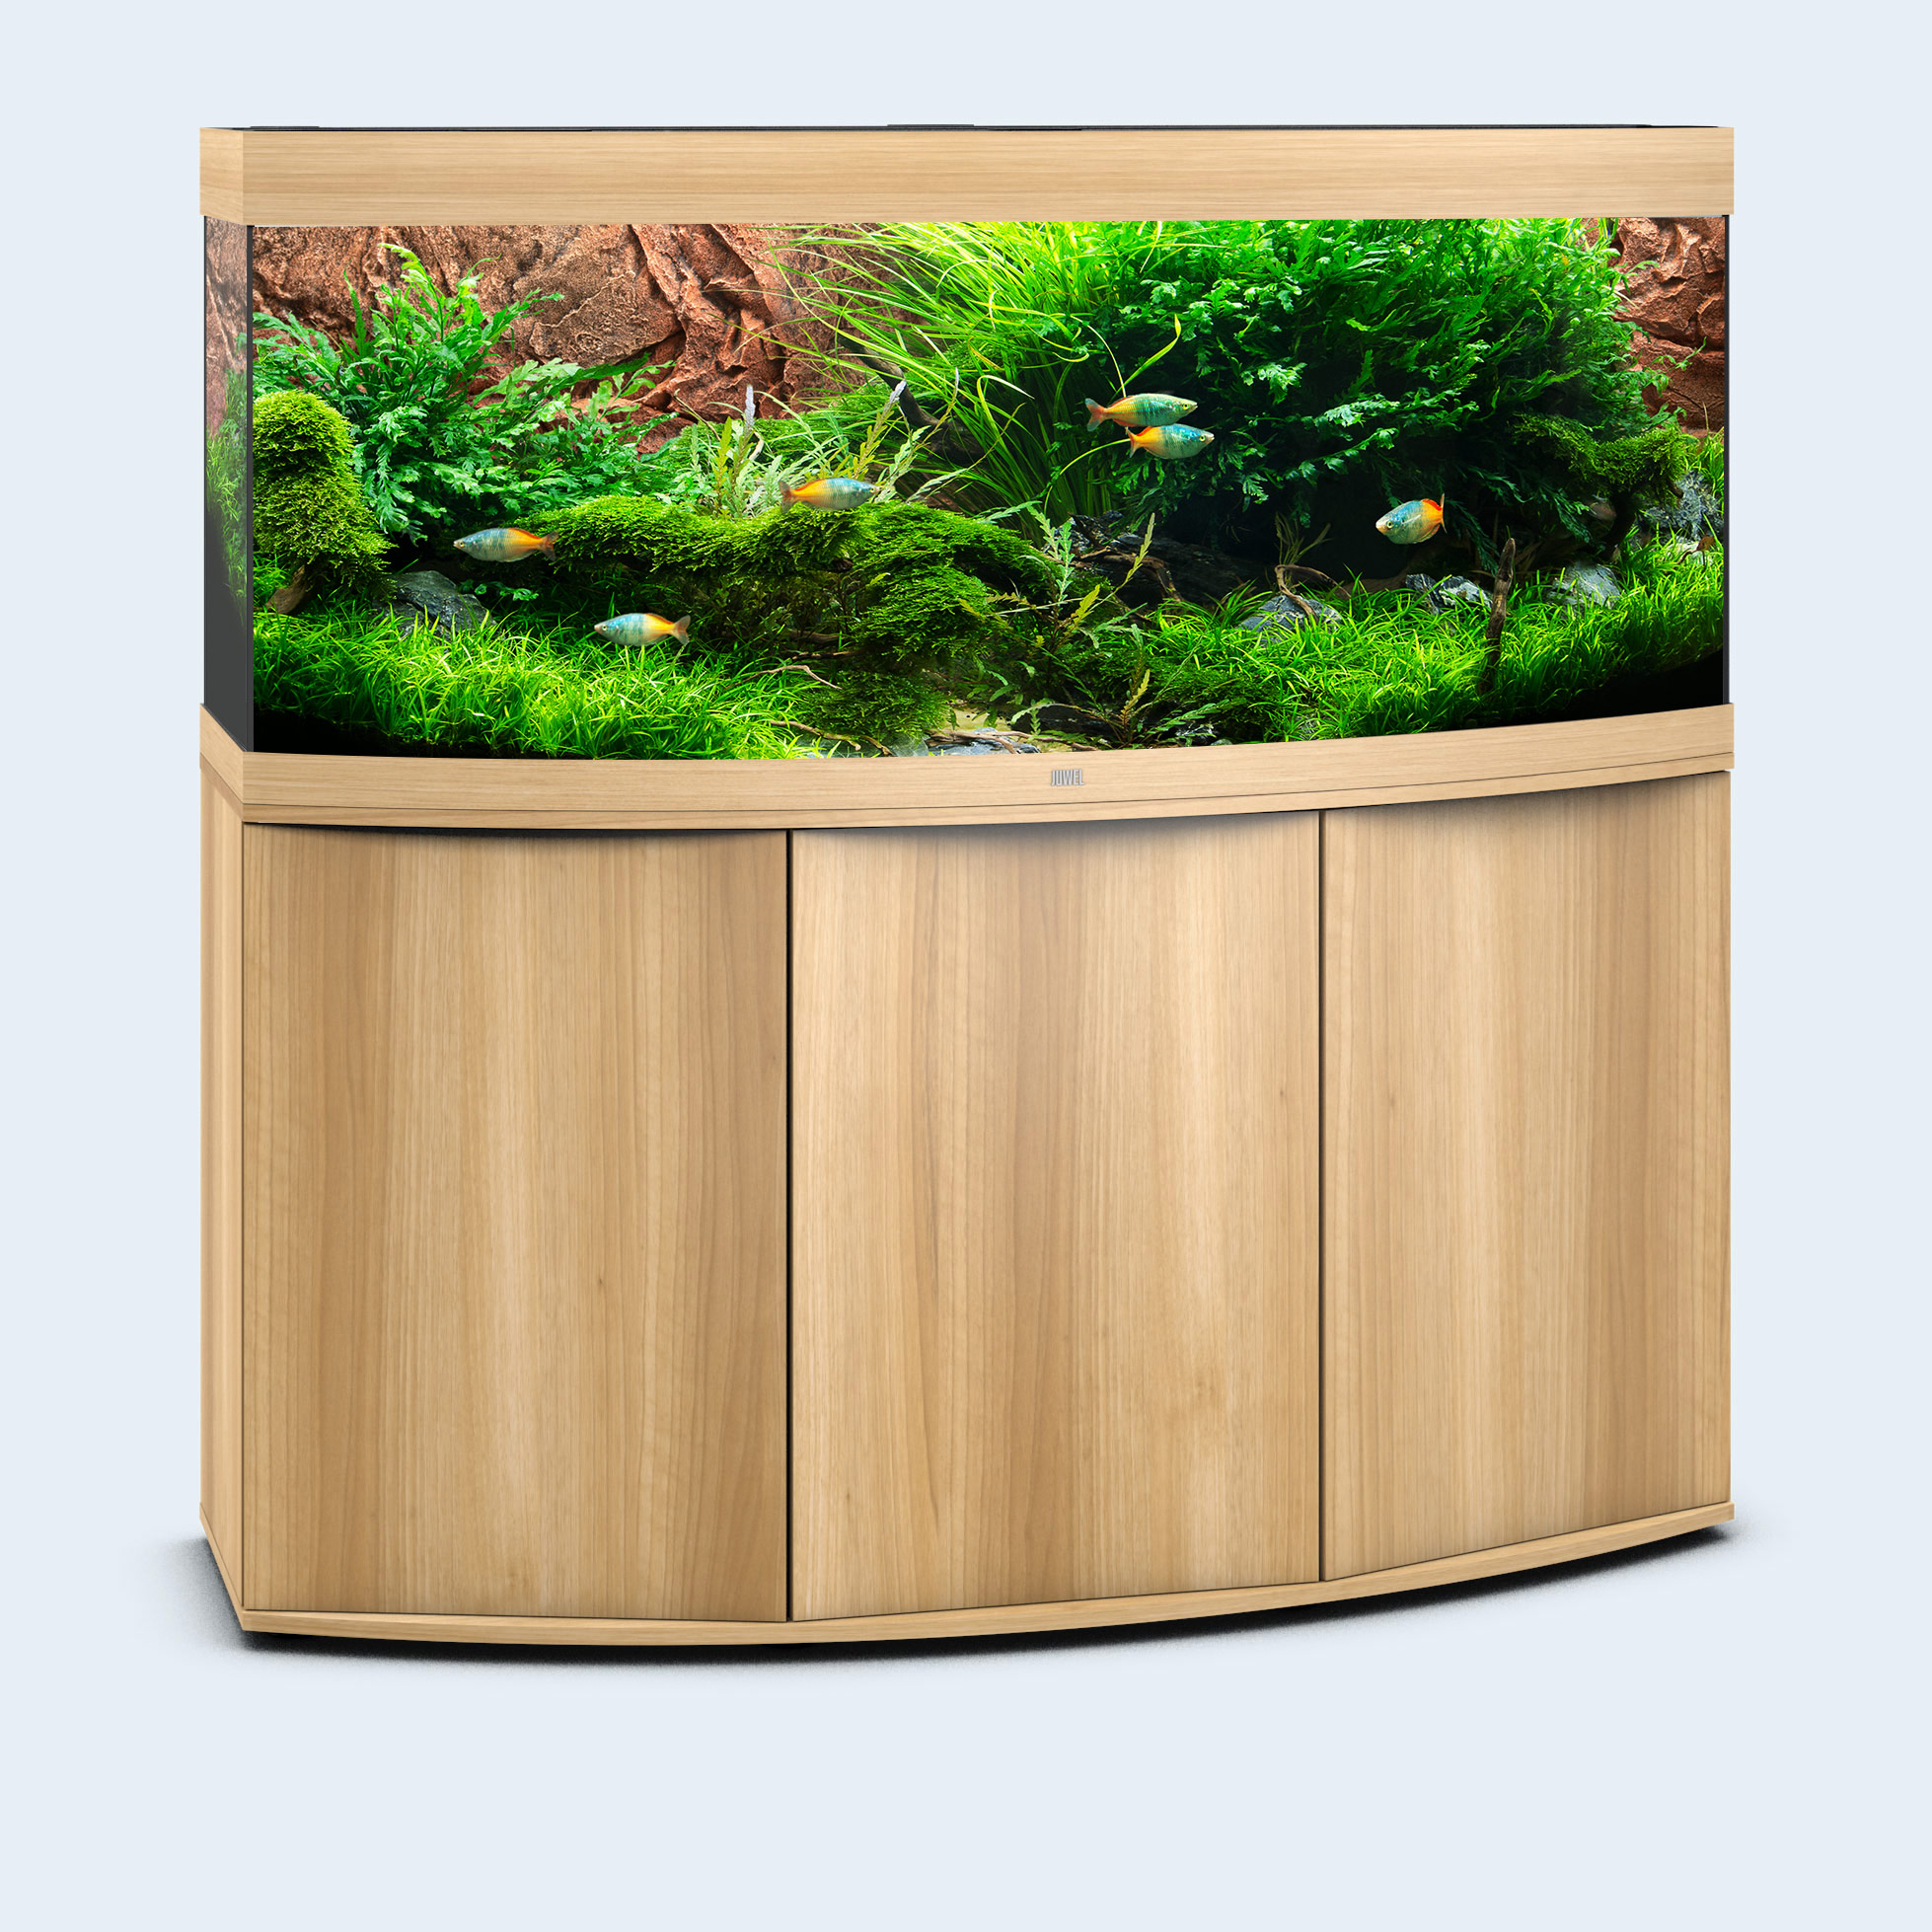 Juwel aquarium vision 450 led purchase online for Aquarium juwel